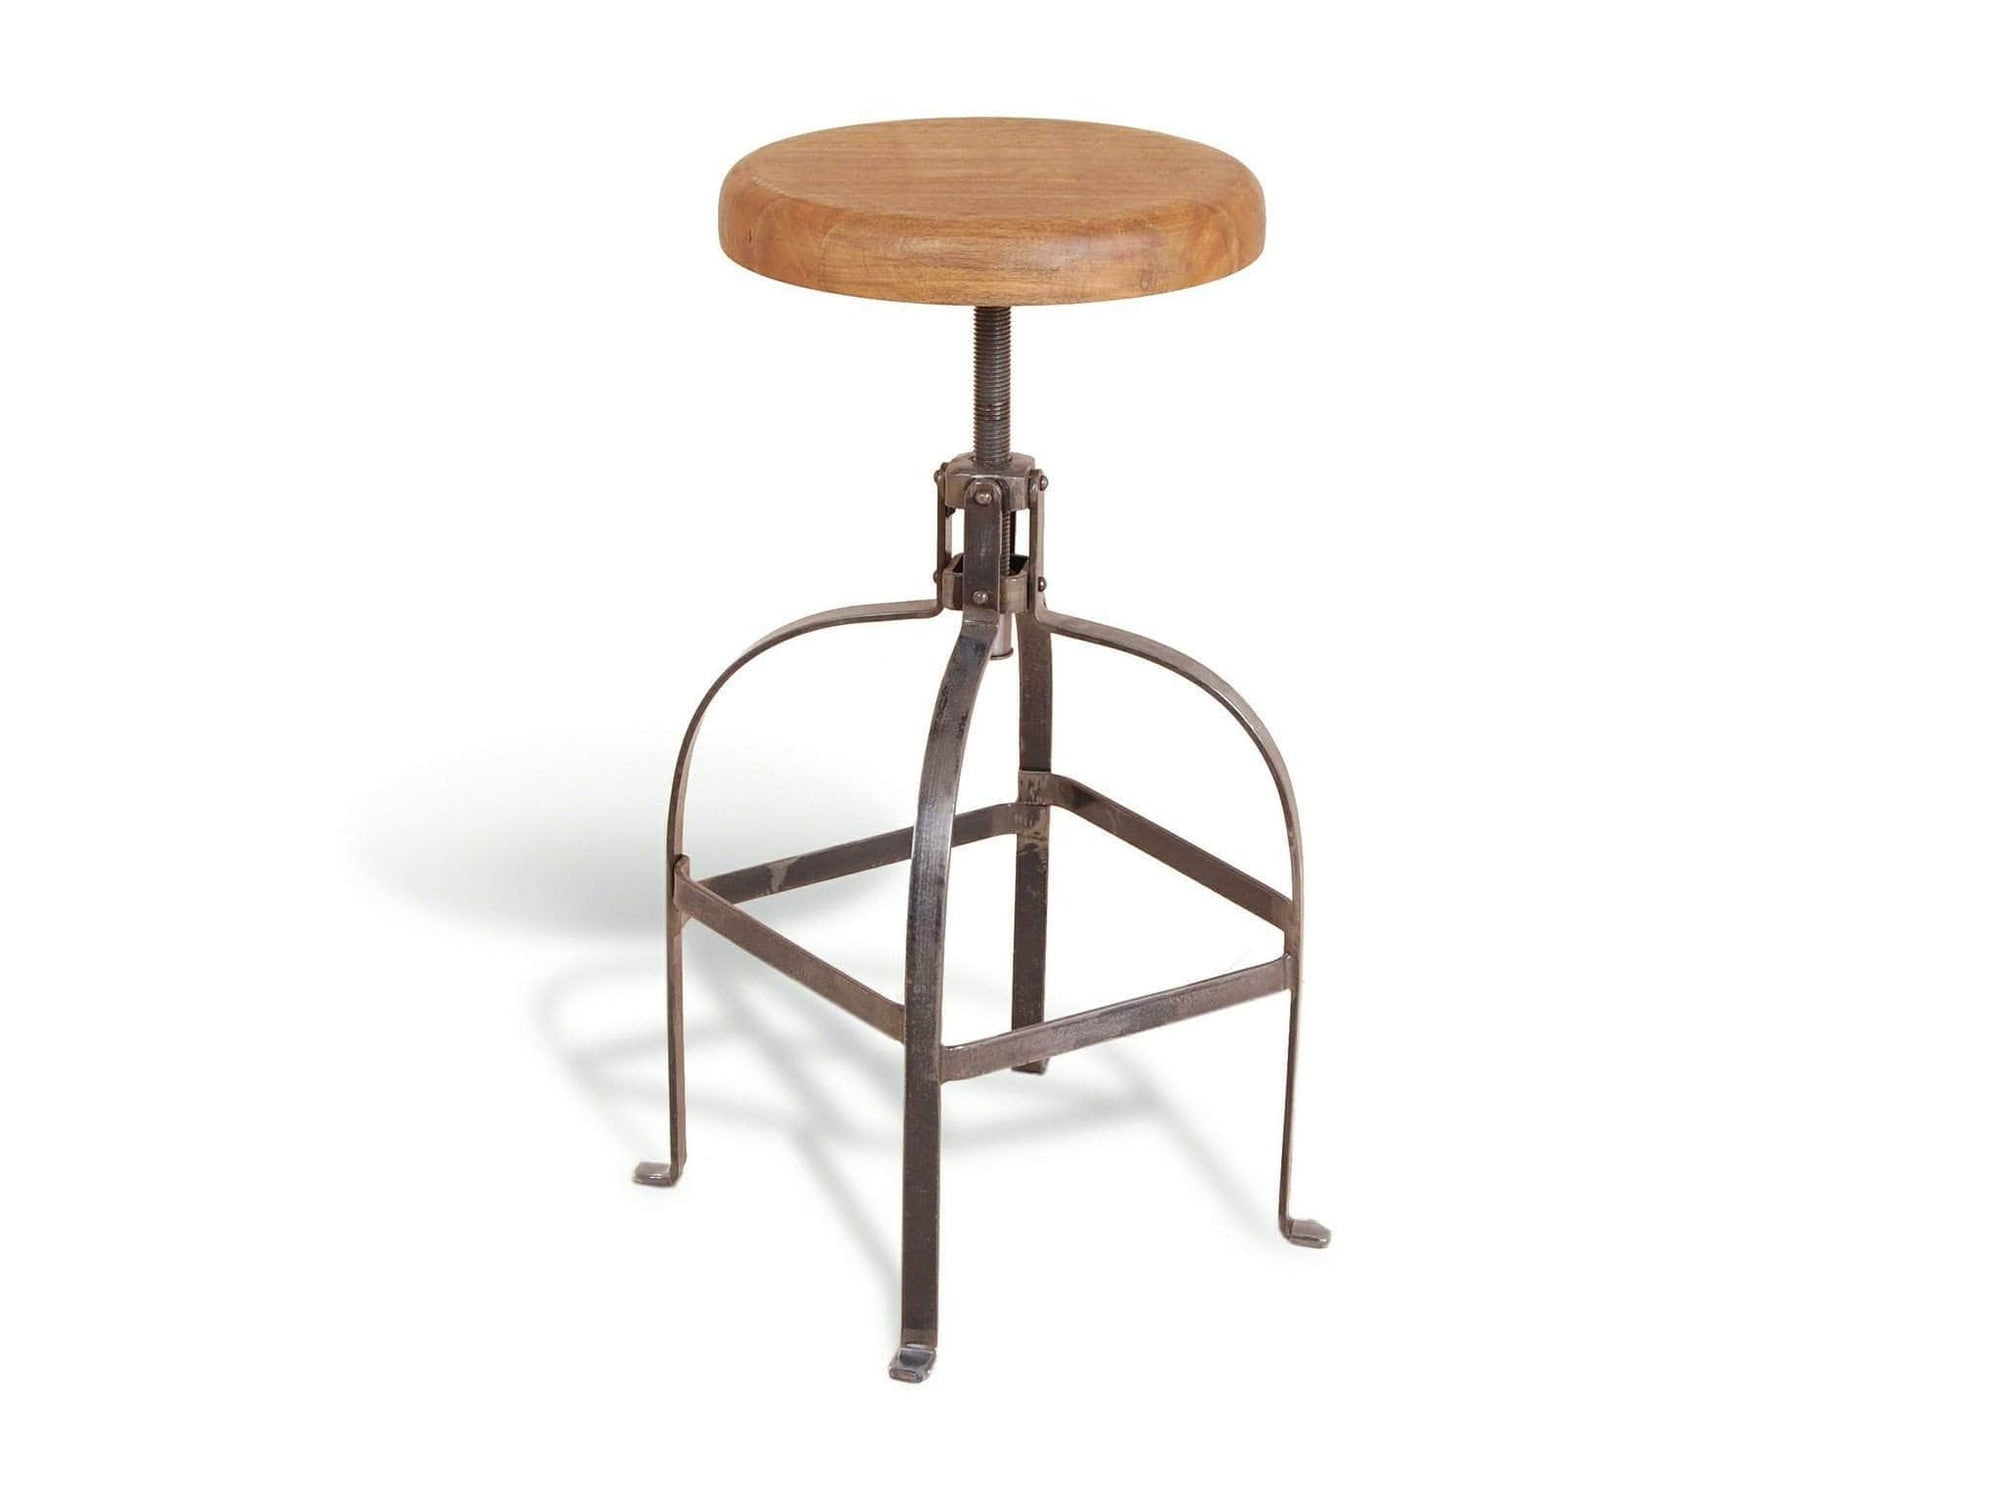 London industrial style stool